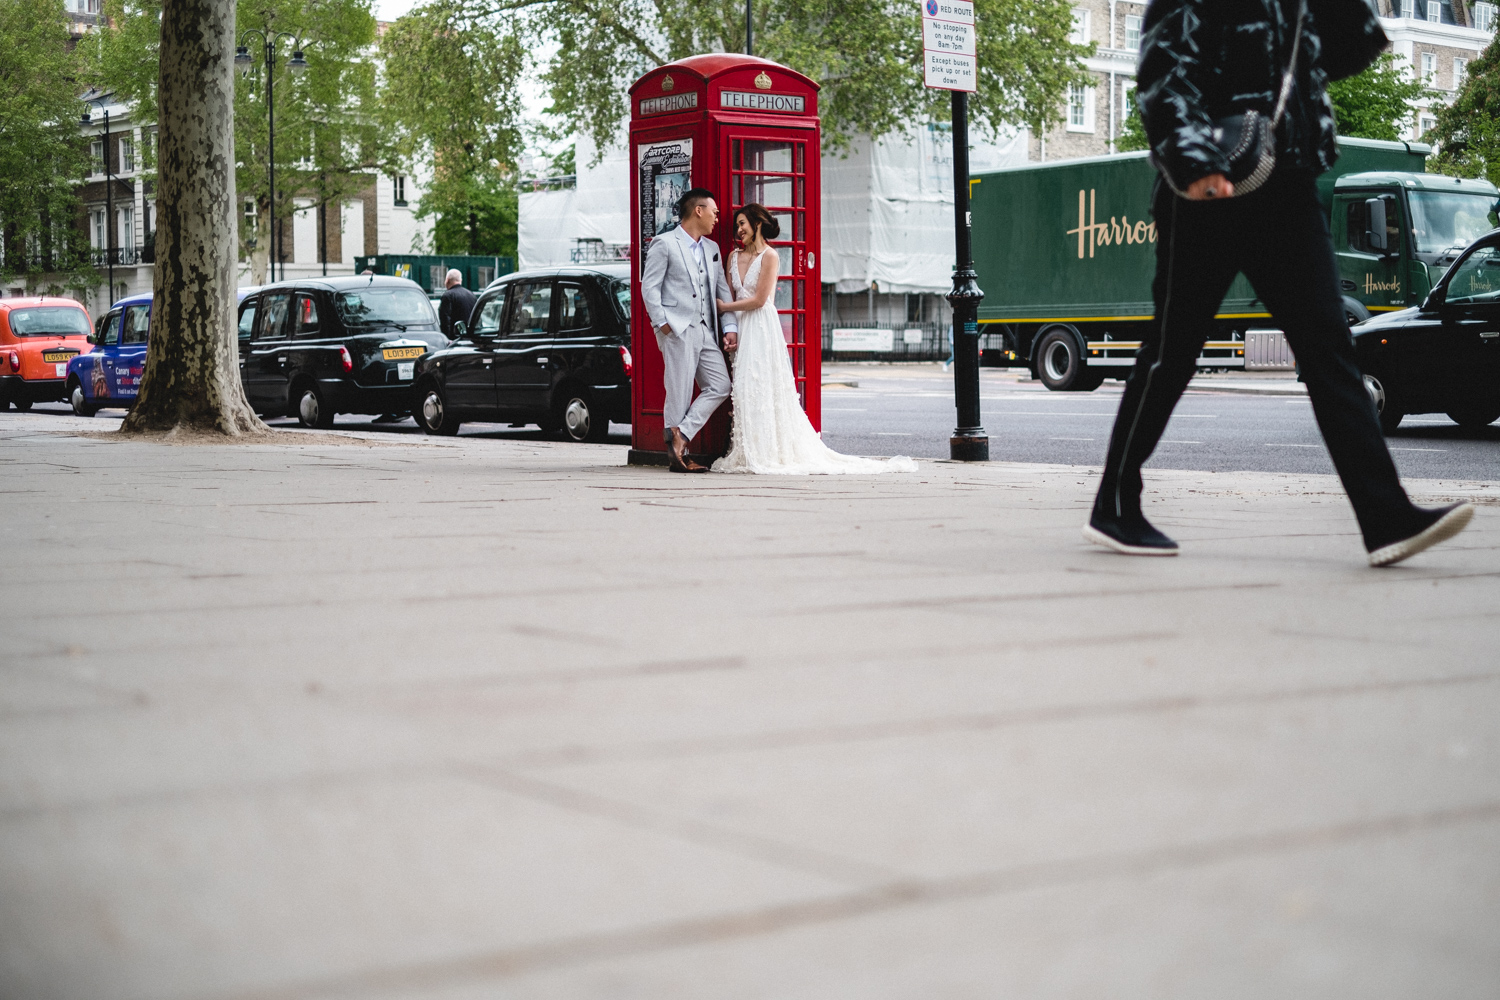 London pre-wedding photos - telephone box